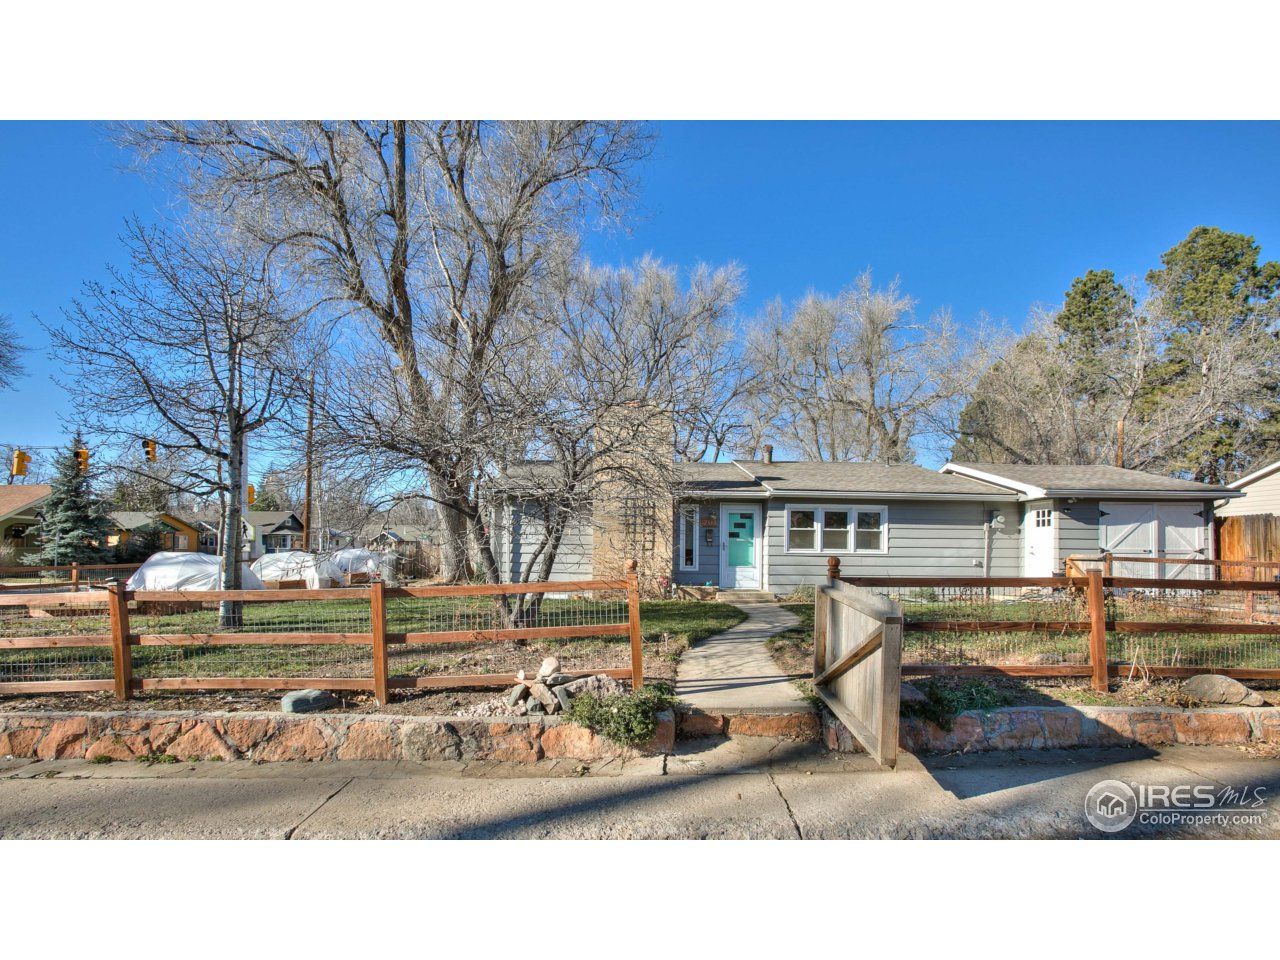 201 N McKinley Ave, Fort Collins CO 80521